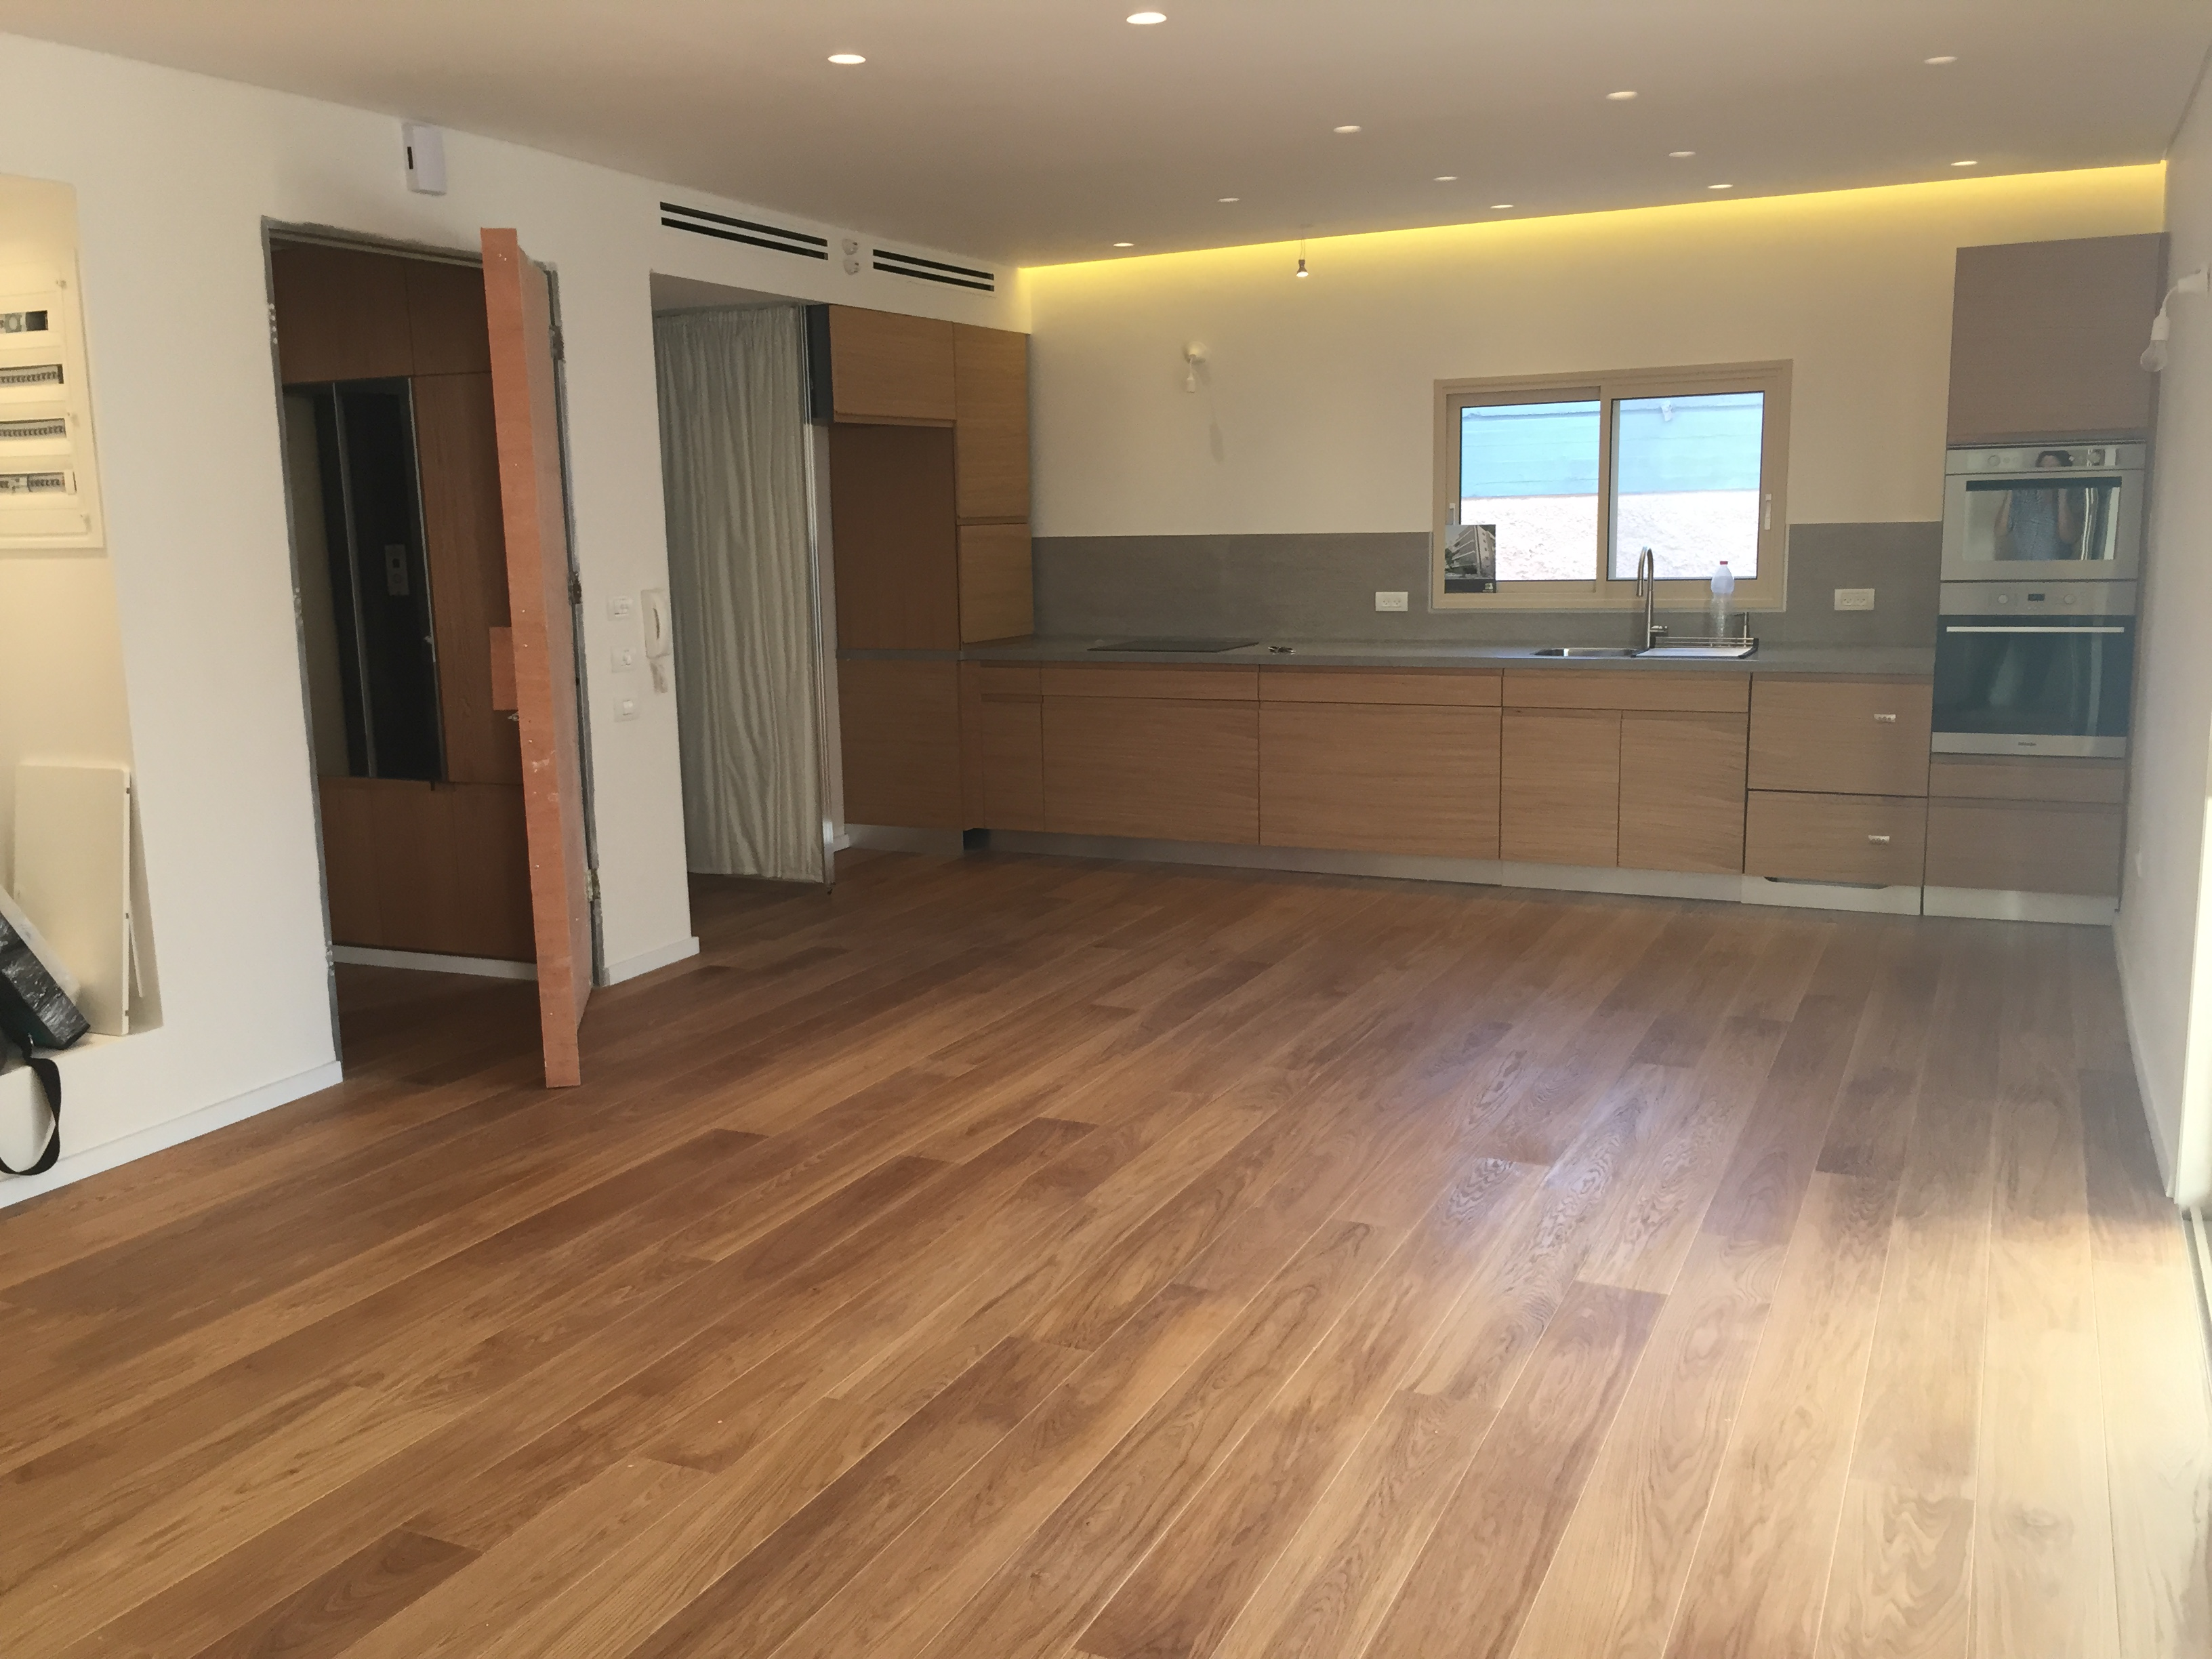 New & Stunning 2BR Apartment Next to Rothschild For Rent